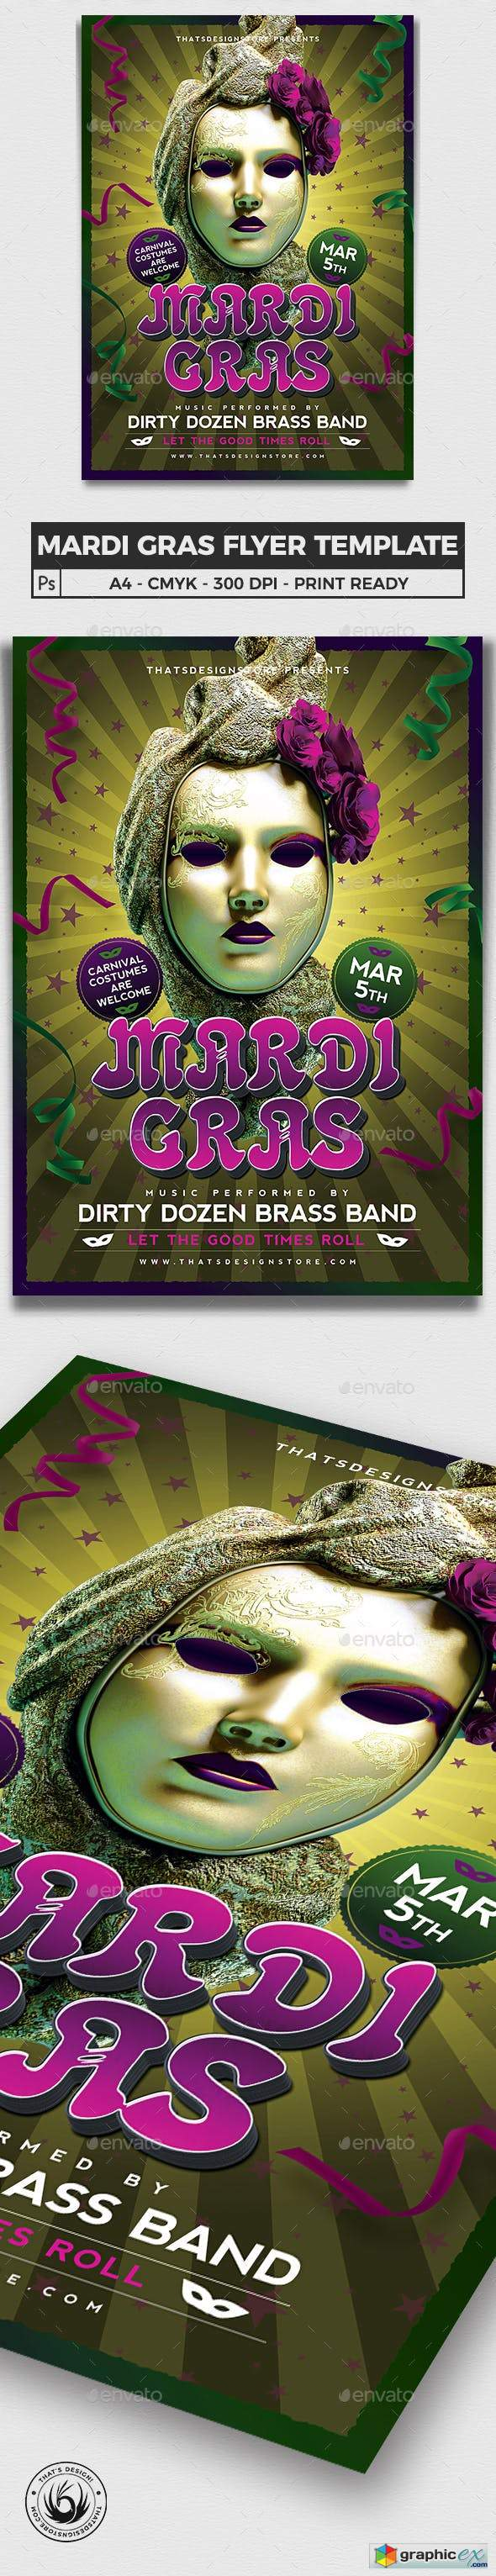 Mardi Gras Flyer Template V2